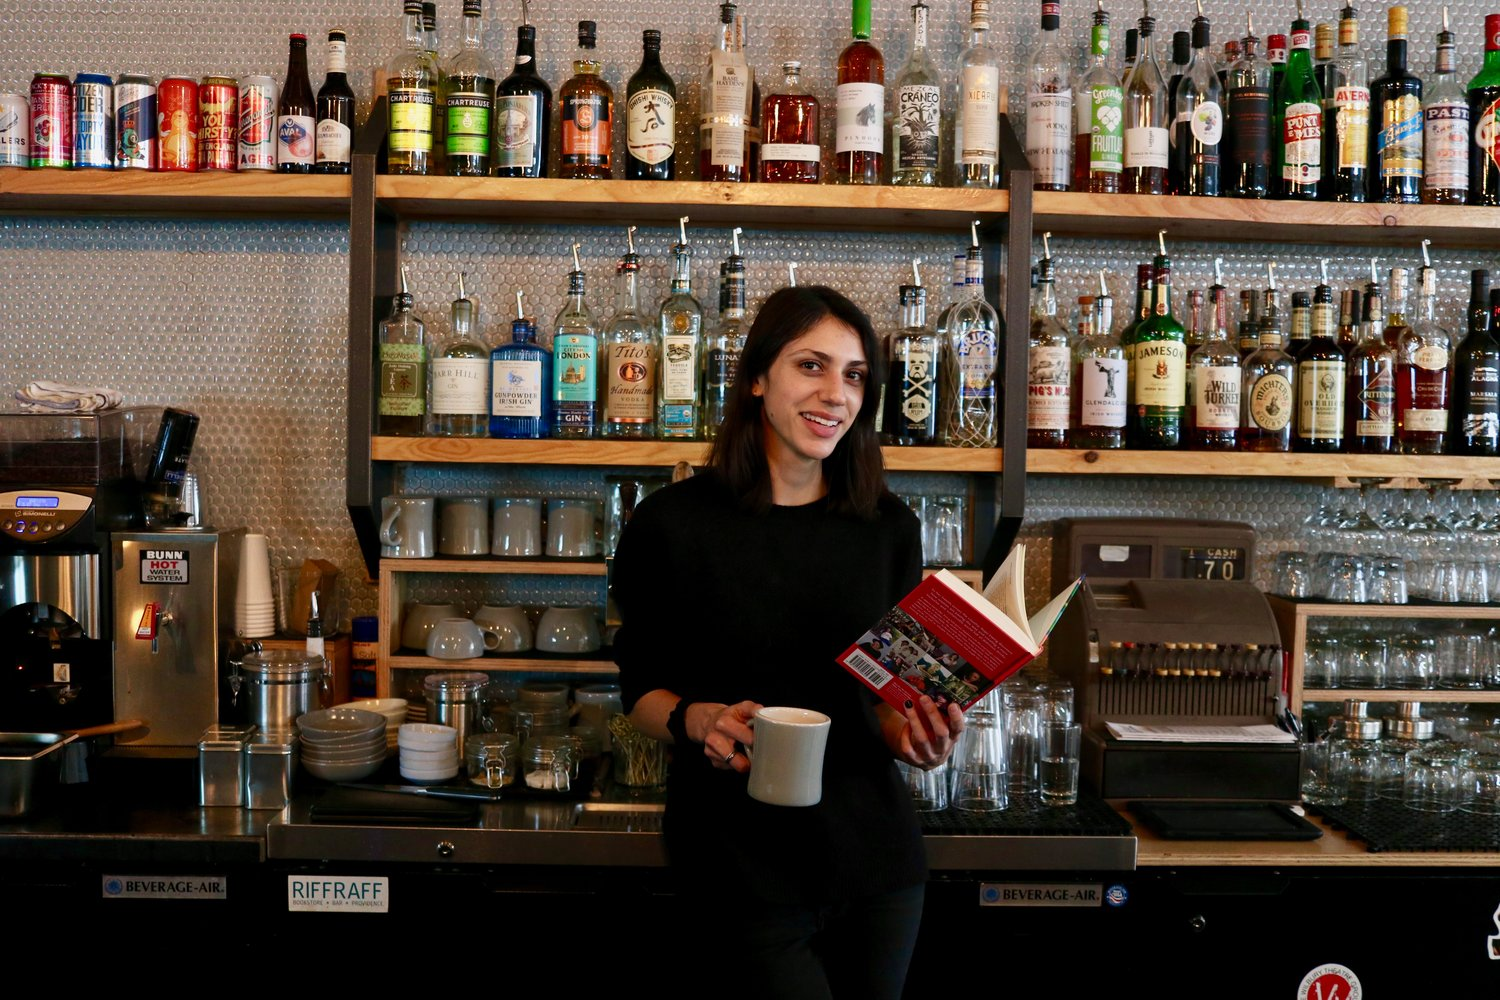 Emma Ramadan and Tom Roberge take great pride in both the books and cocktails they sell at Riffraff